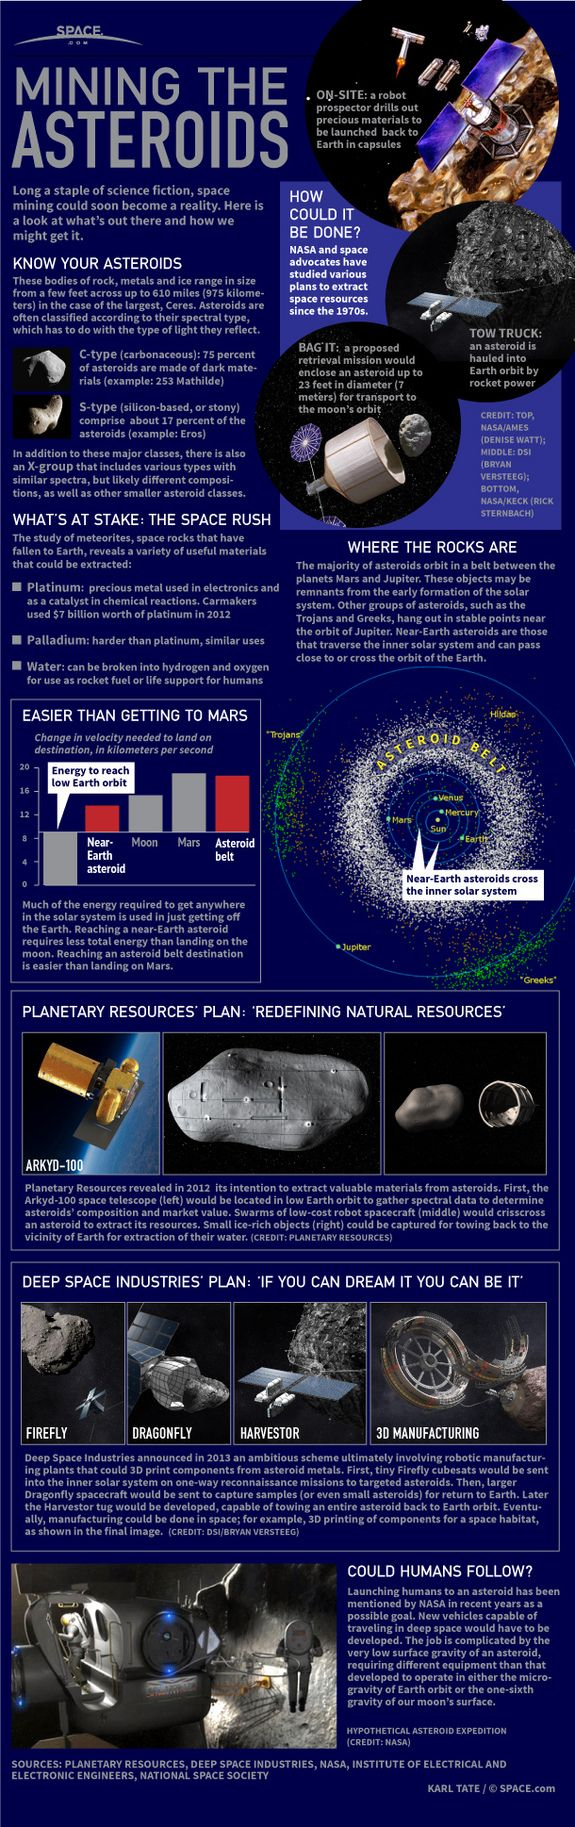 Planetary Resources' and Deep Space Industries' plans of their intention to mine the asteroids rekindle dreams of the early Space Age.